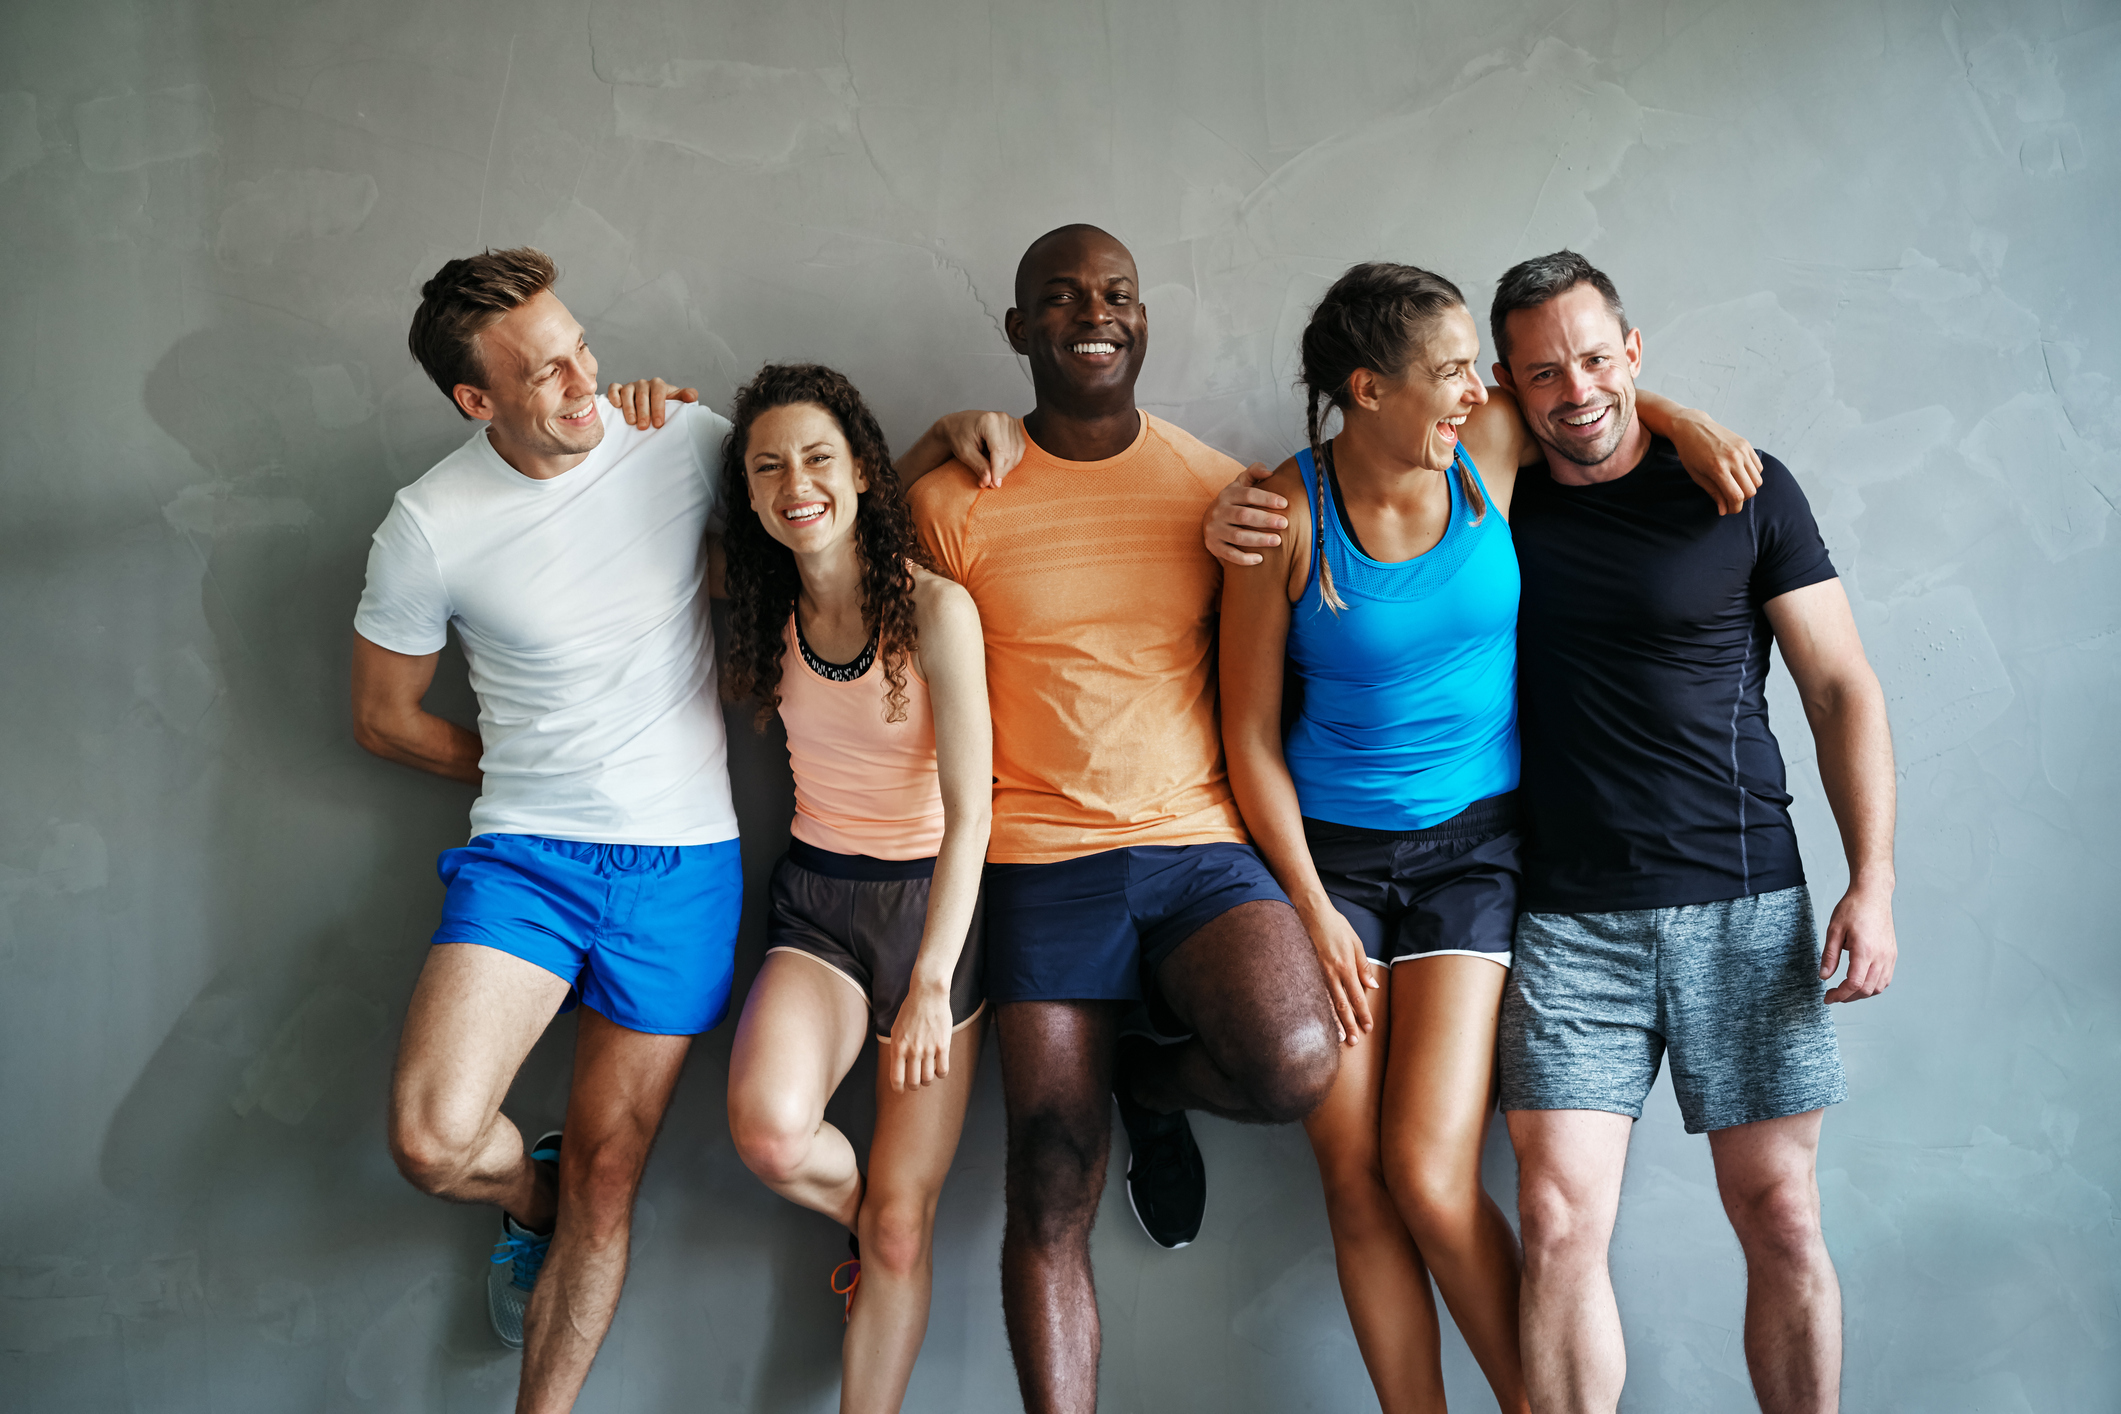 Smiling group of friends in sportswear laughing together while standing arm in arm in a gym after a workout